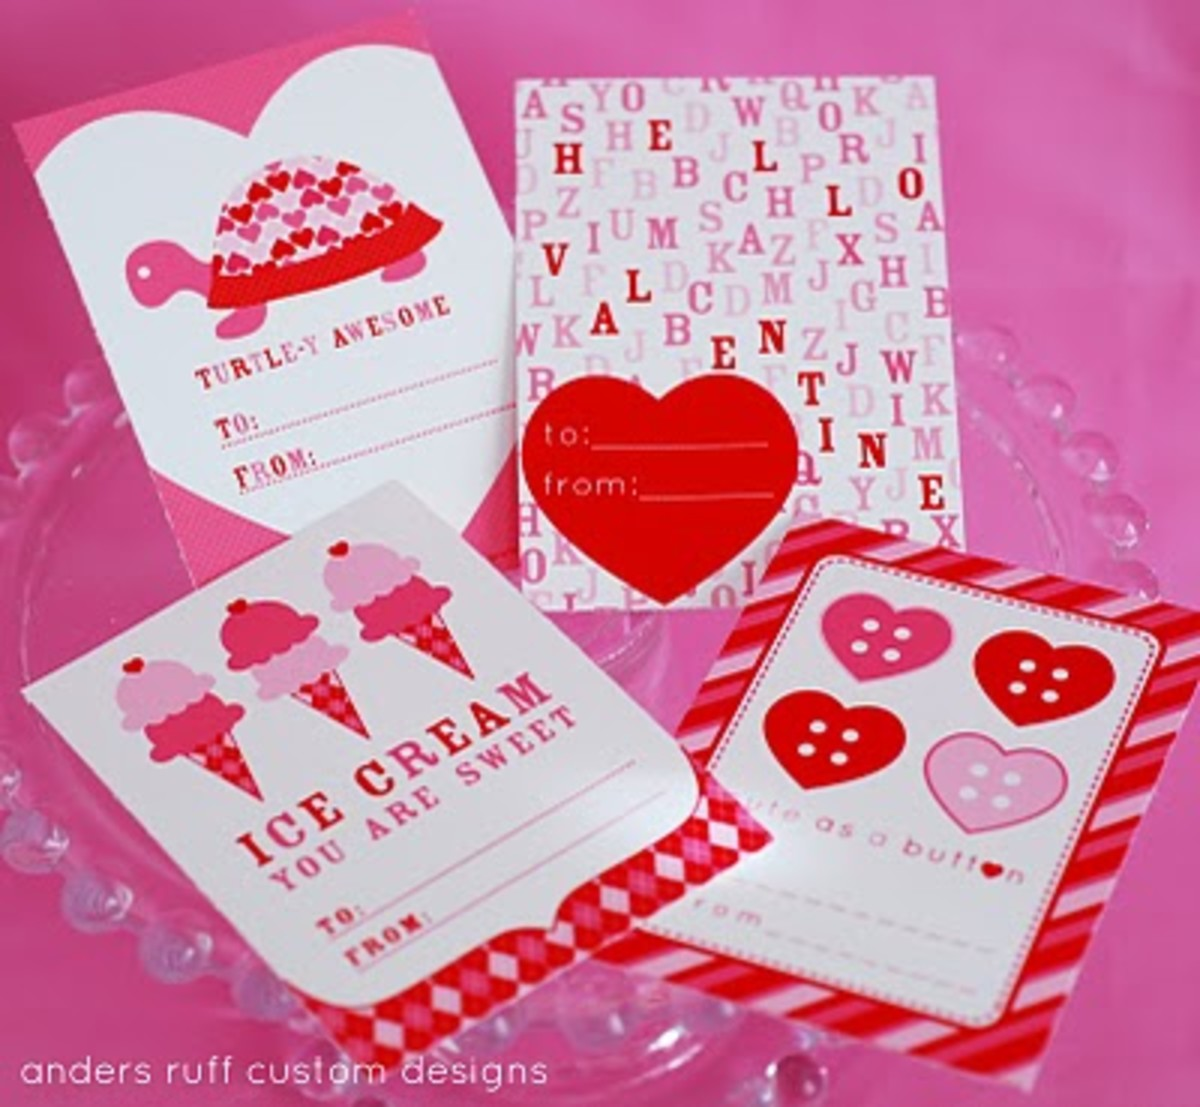 4 printable Valentine's by Anders Ruff